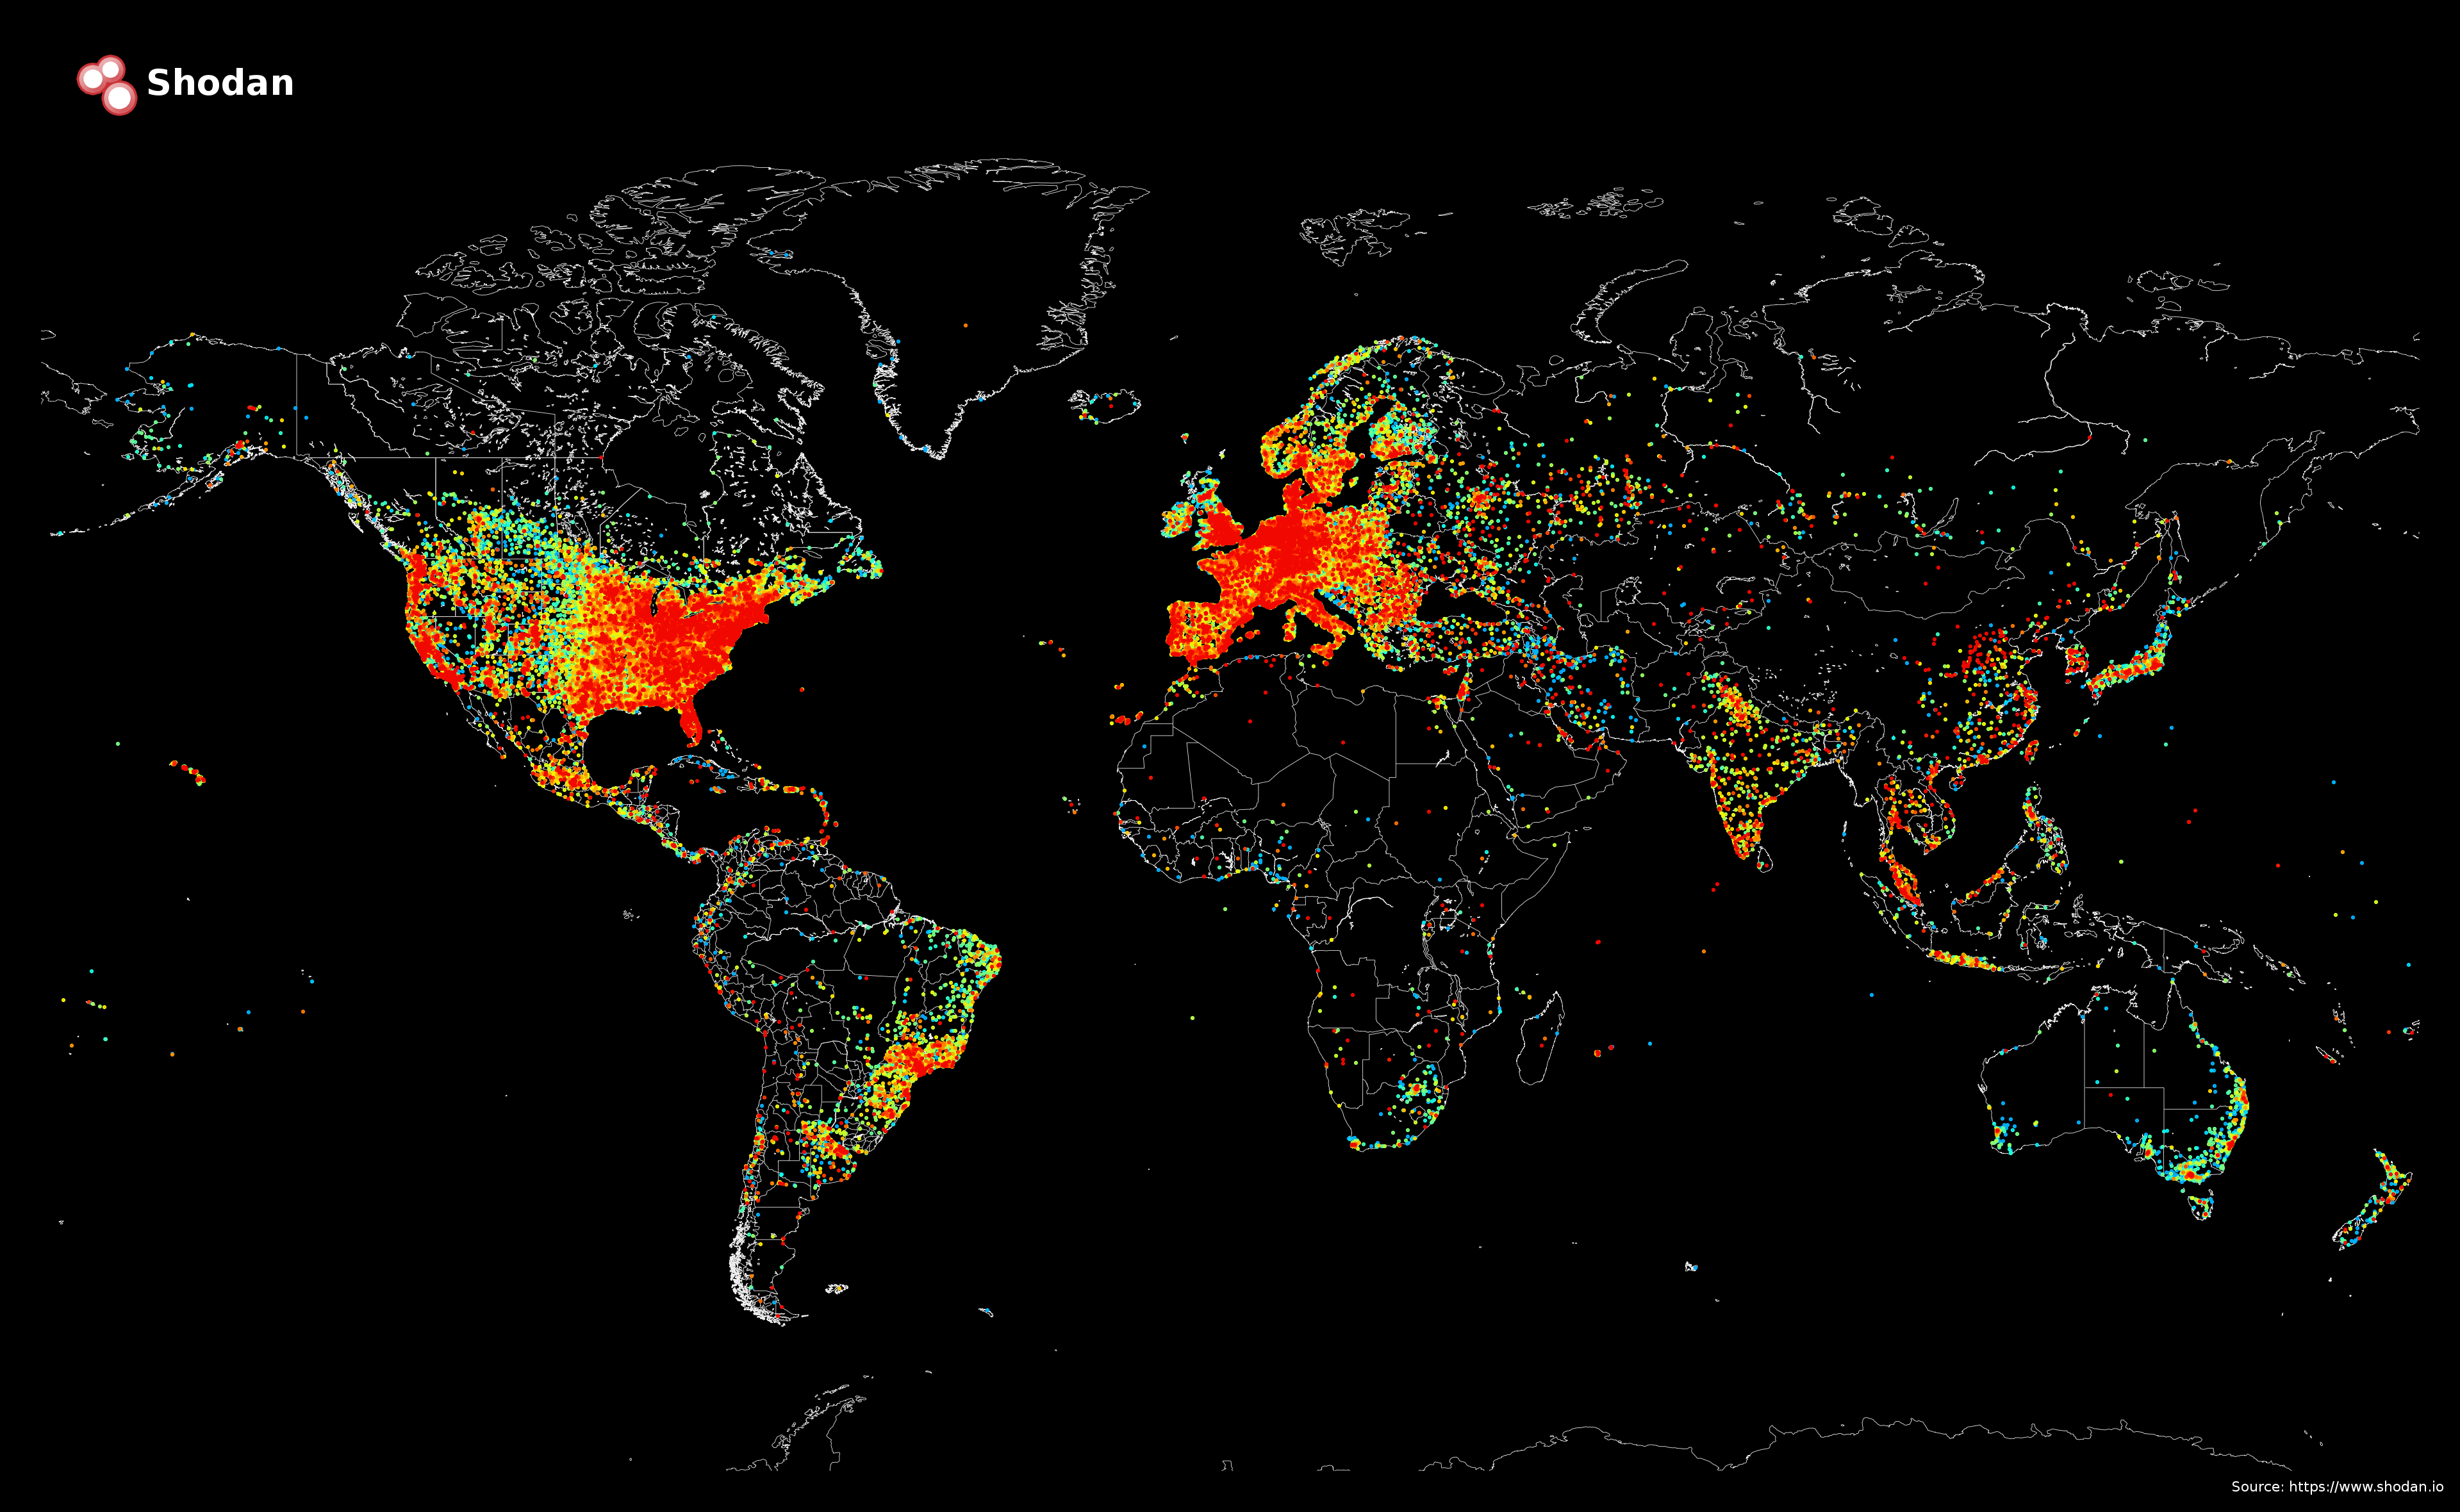 The internet in 2014, before the Pacific Ocean was filled with internet.